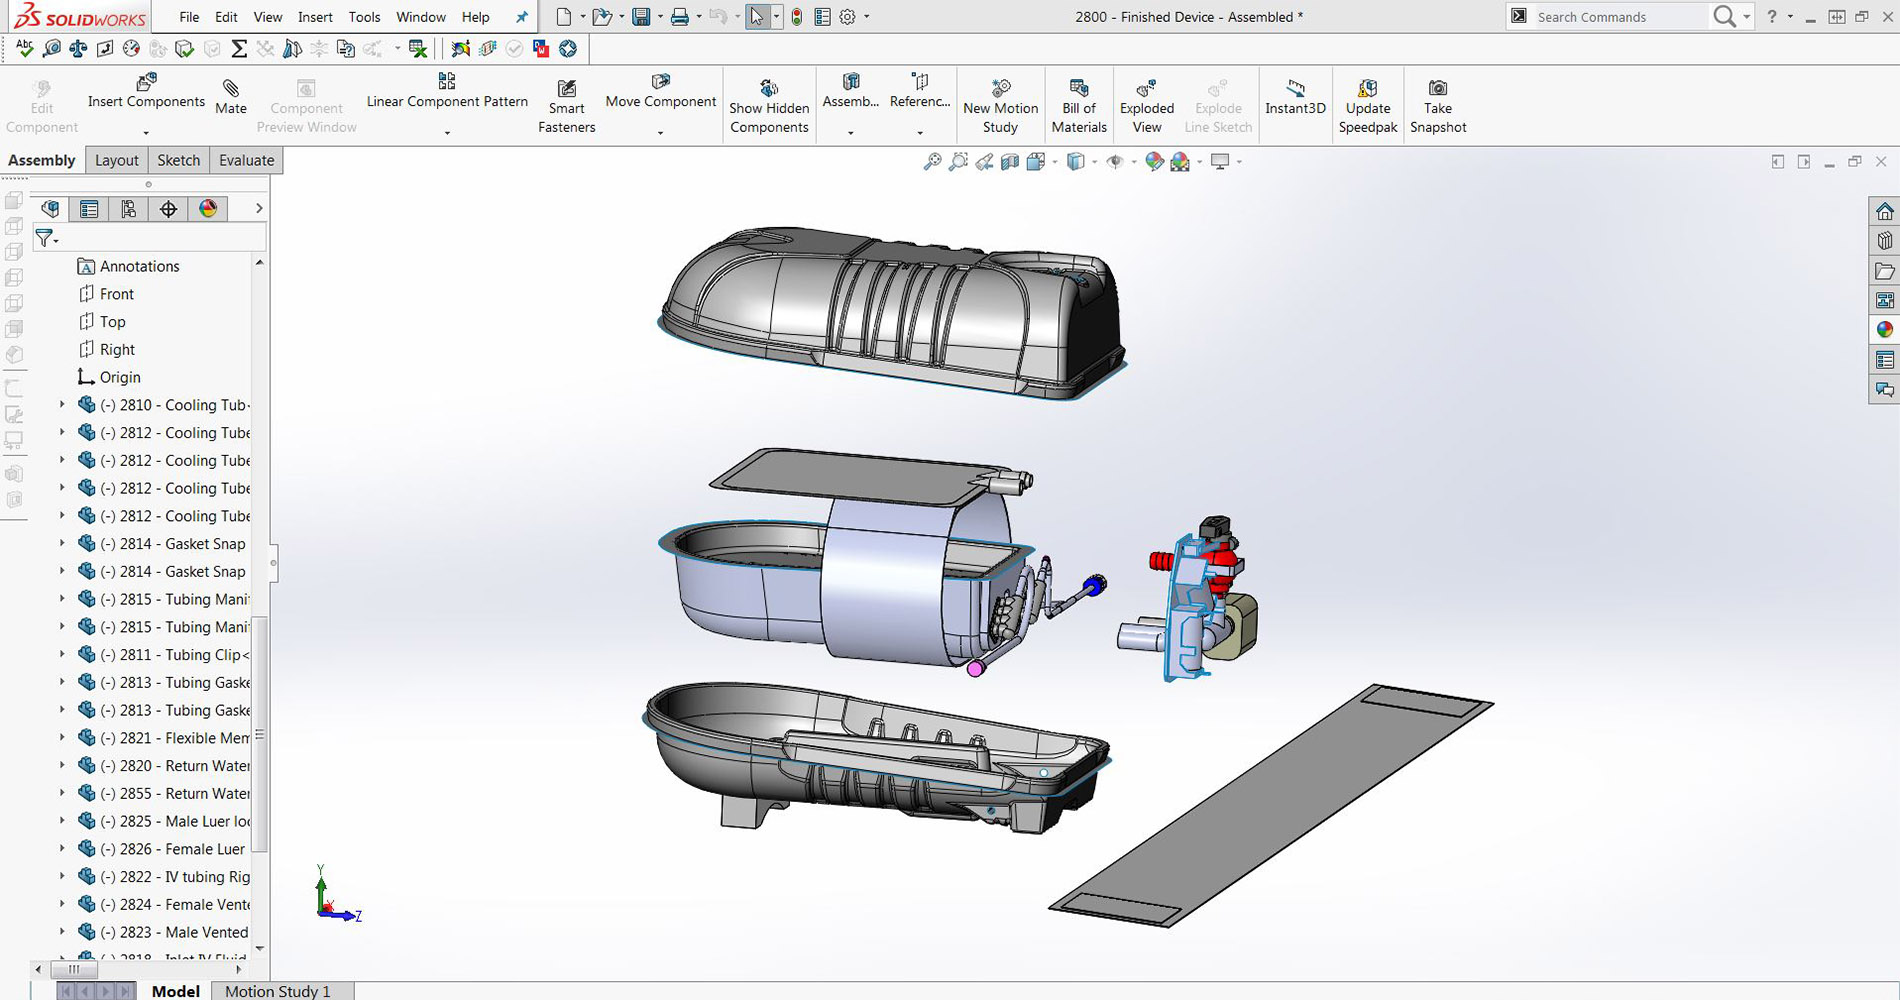 CAD Modeling for Hypocore Biotech devices